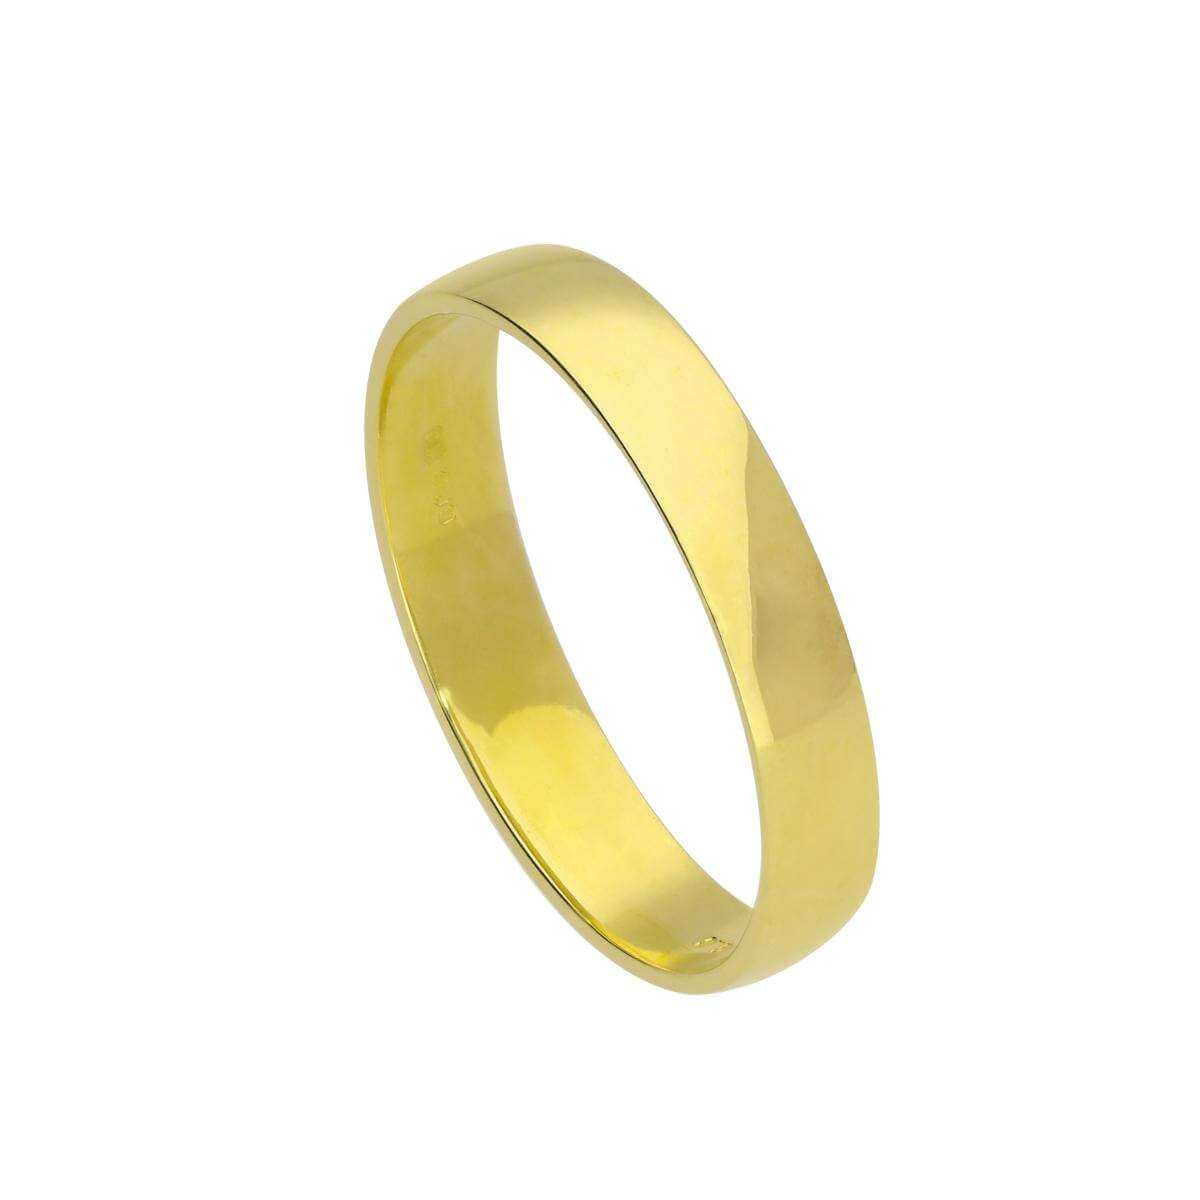 9ct Gold Engravable 4mm Wedding Band Ring Size I - U